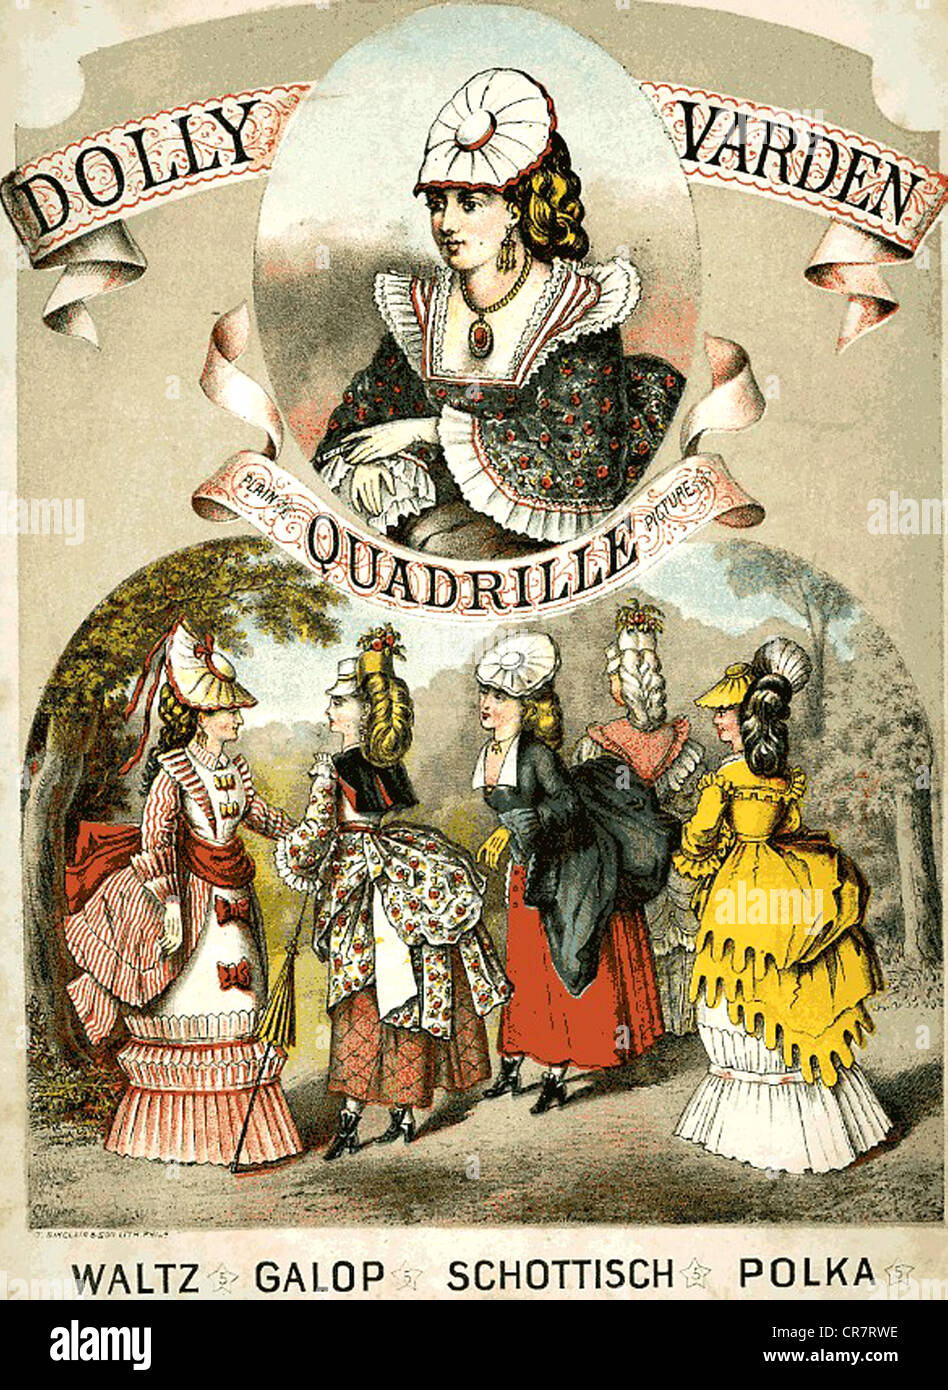 DOLLY VARDEN  1872 sheet music based on the womens fashion style popular at the time - Stock Image